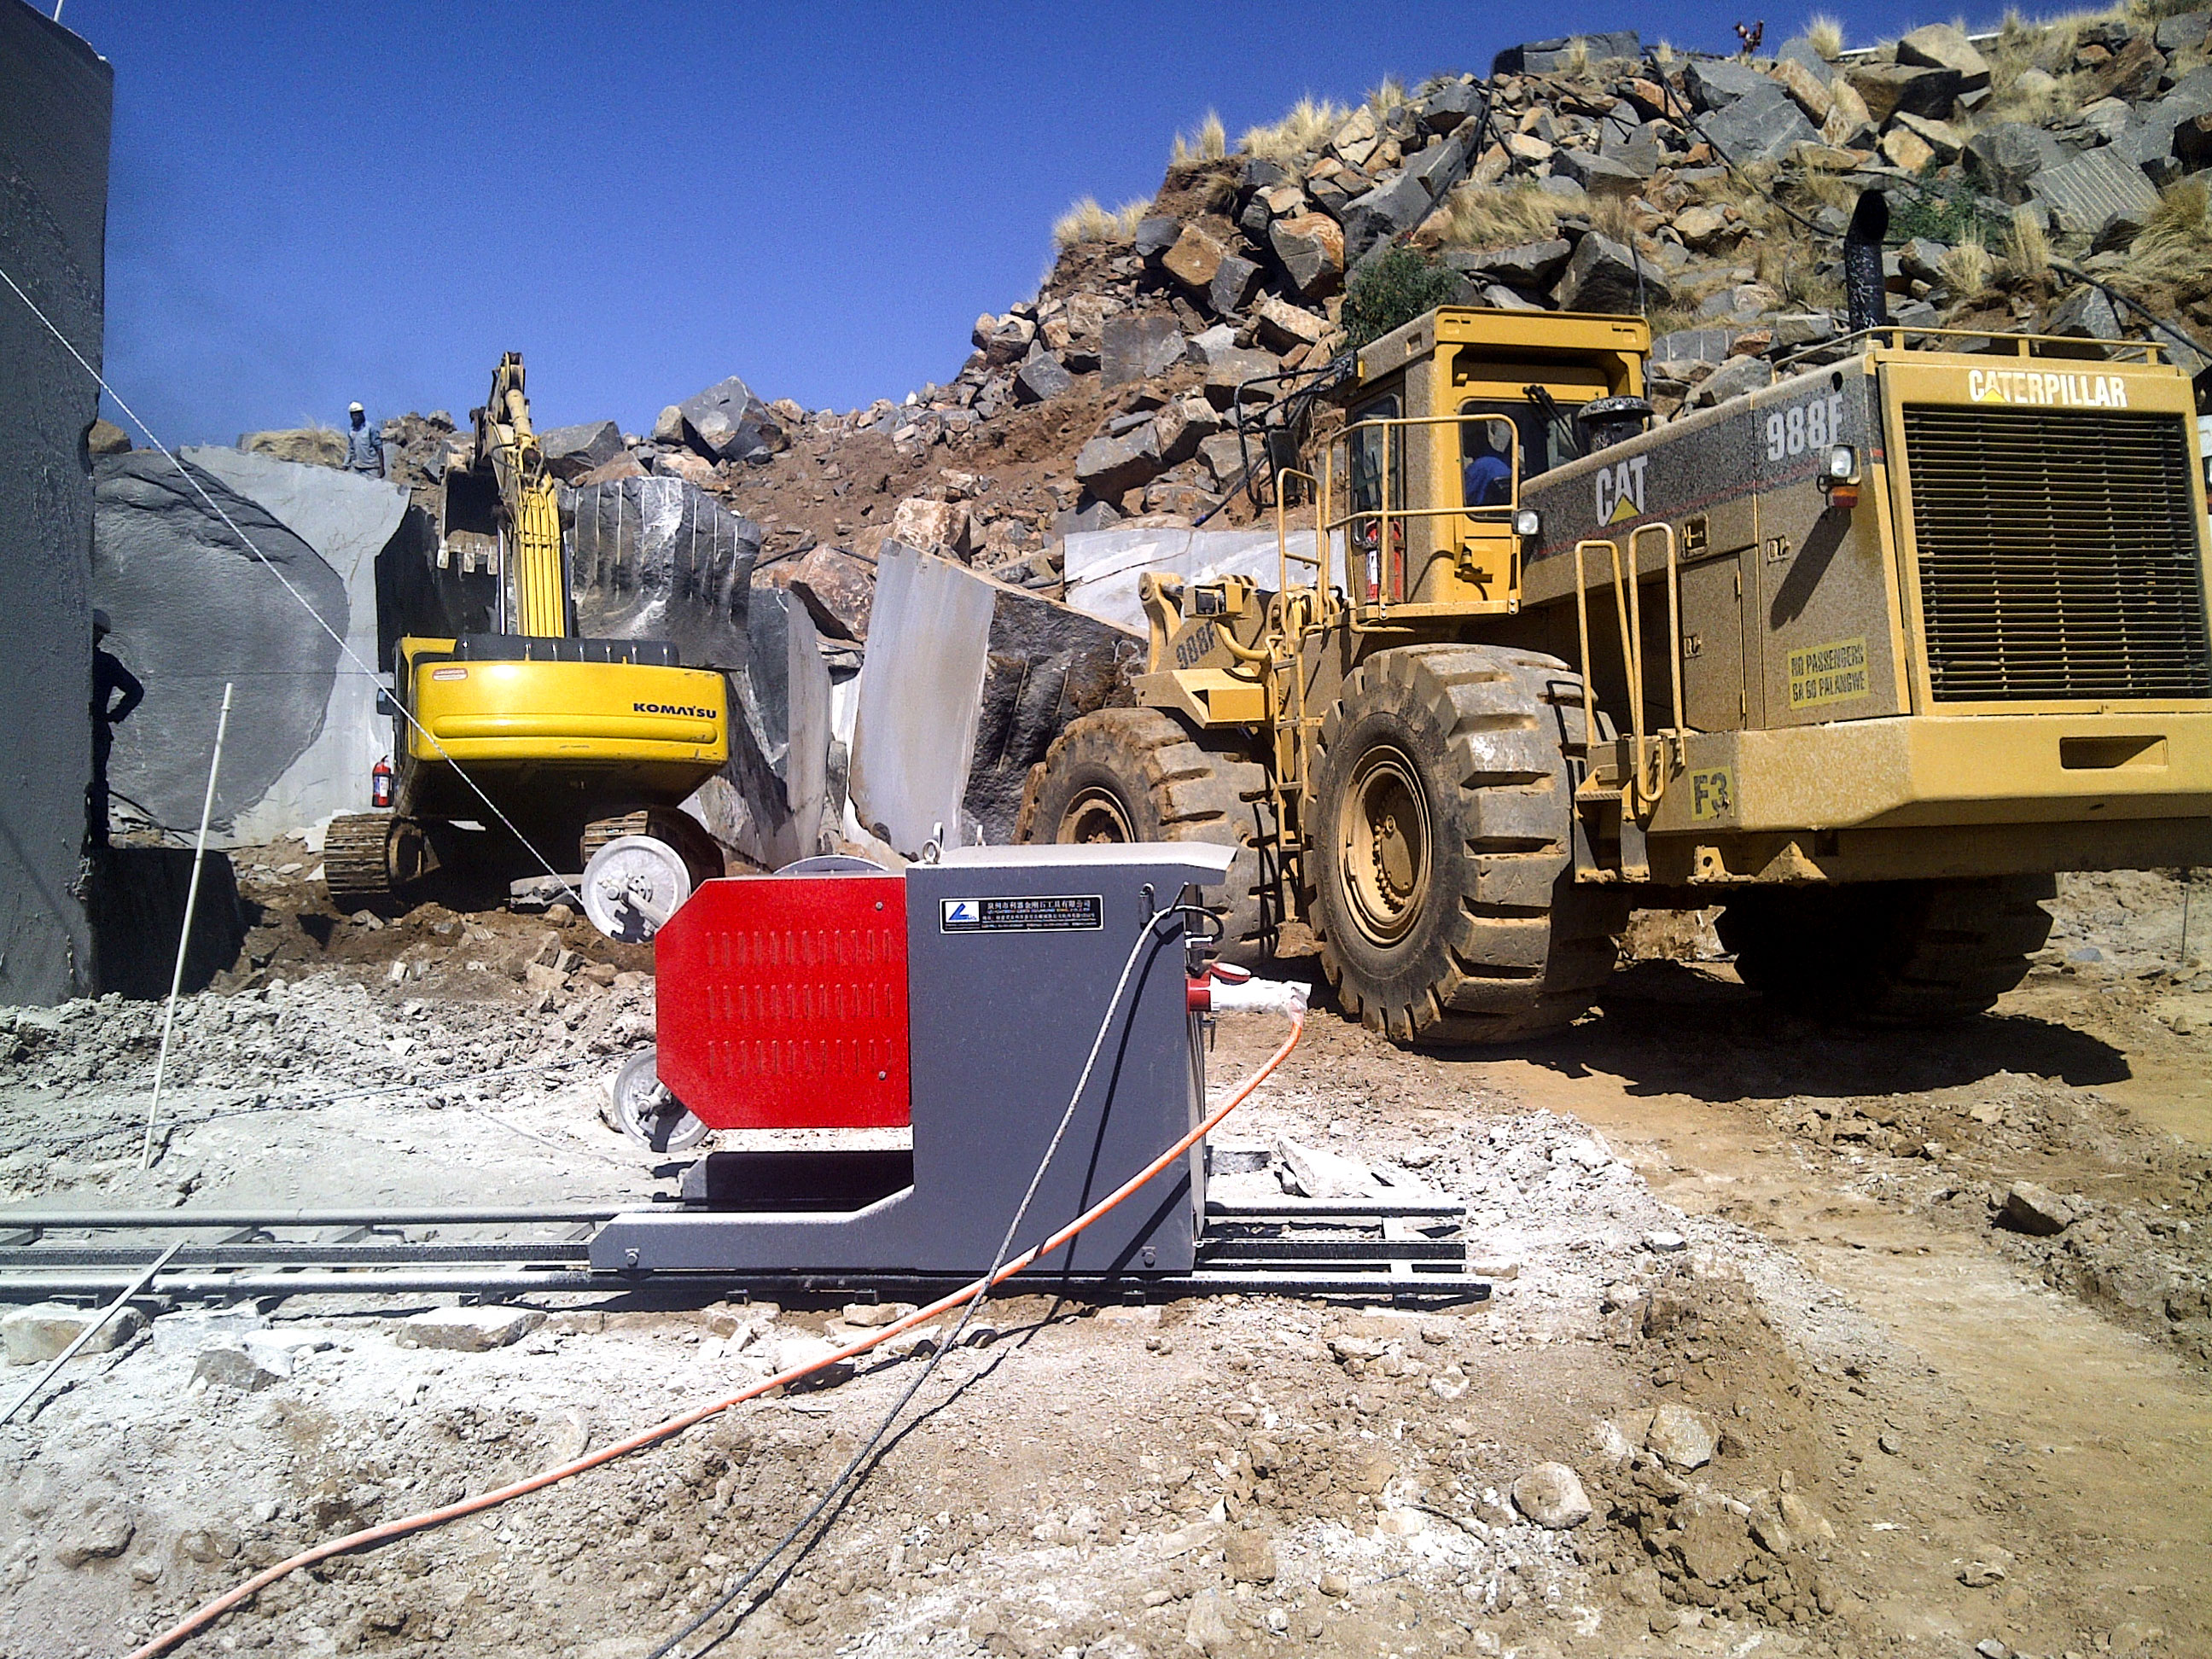 55Kw-Quarry-Saw-in-Operation